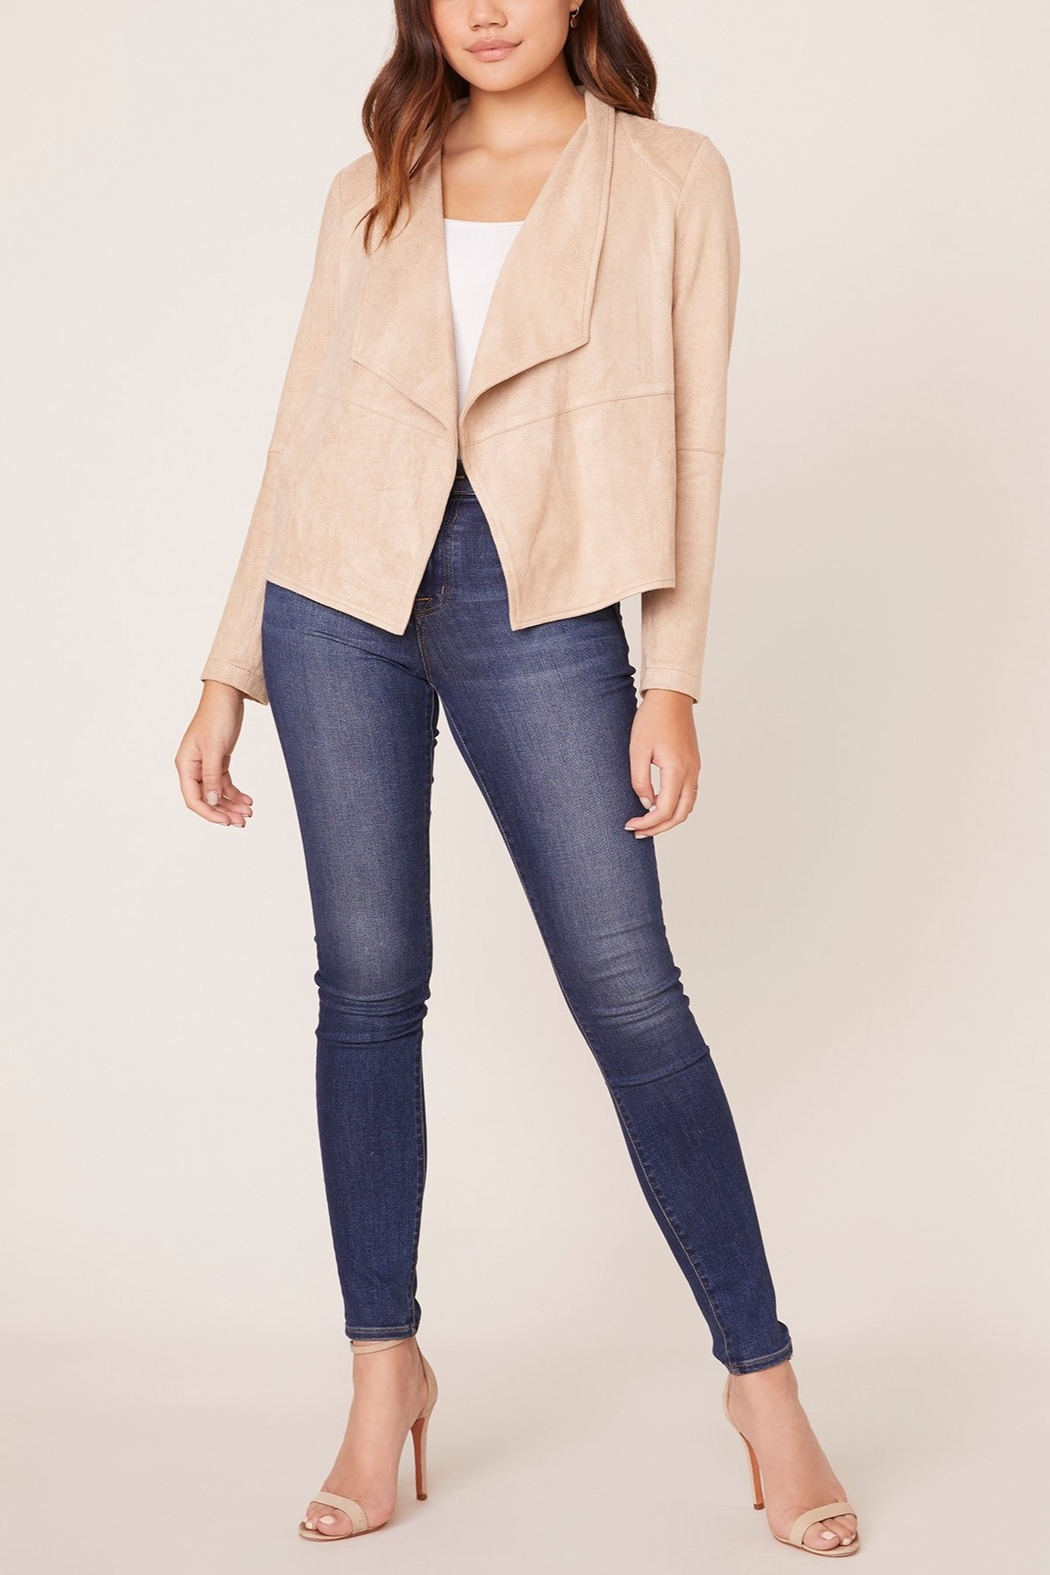 BB Dakota Suede It Out Faux Suede Jacket - Main Image